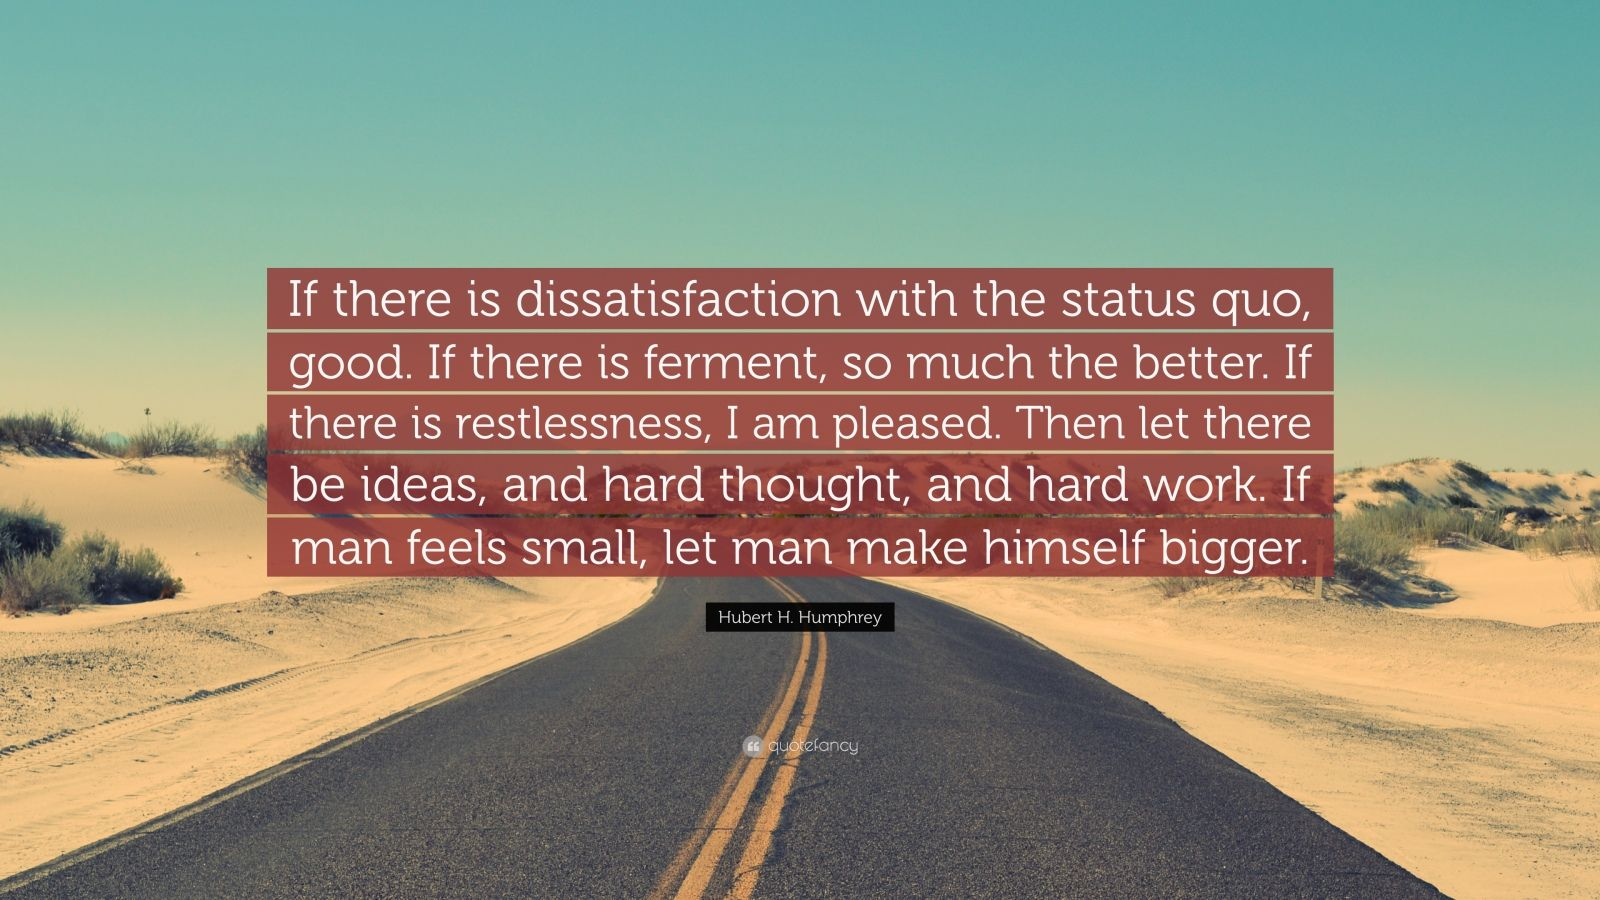 """Hubert H. Humphrey Quote: """"If there is dissatisfaction with the status quo, good. If there is ferment, so much the better. If there is restlessness, I am pleased. Then let there be ideas, and hard thought, and hard work. If man feels small, let man make himself bigger."""""""